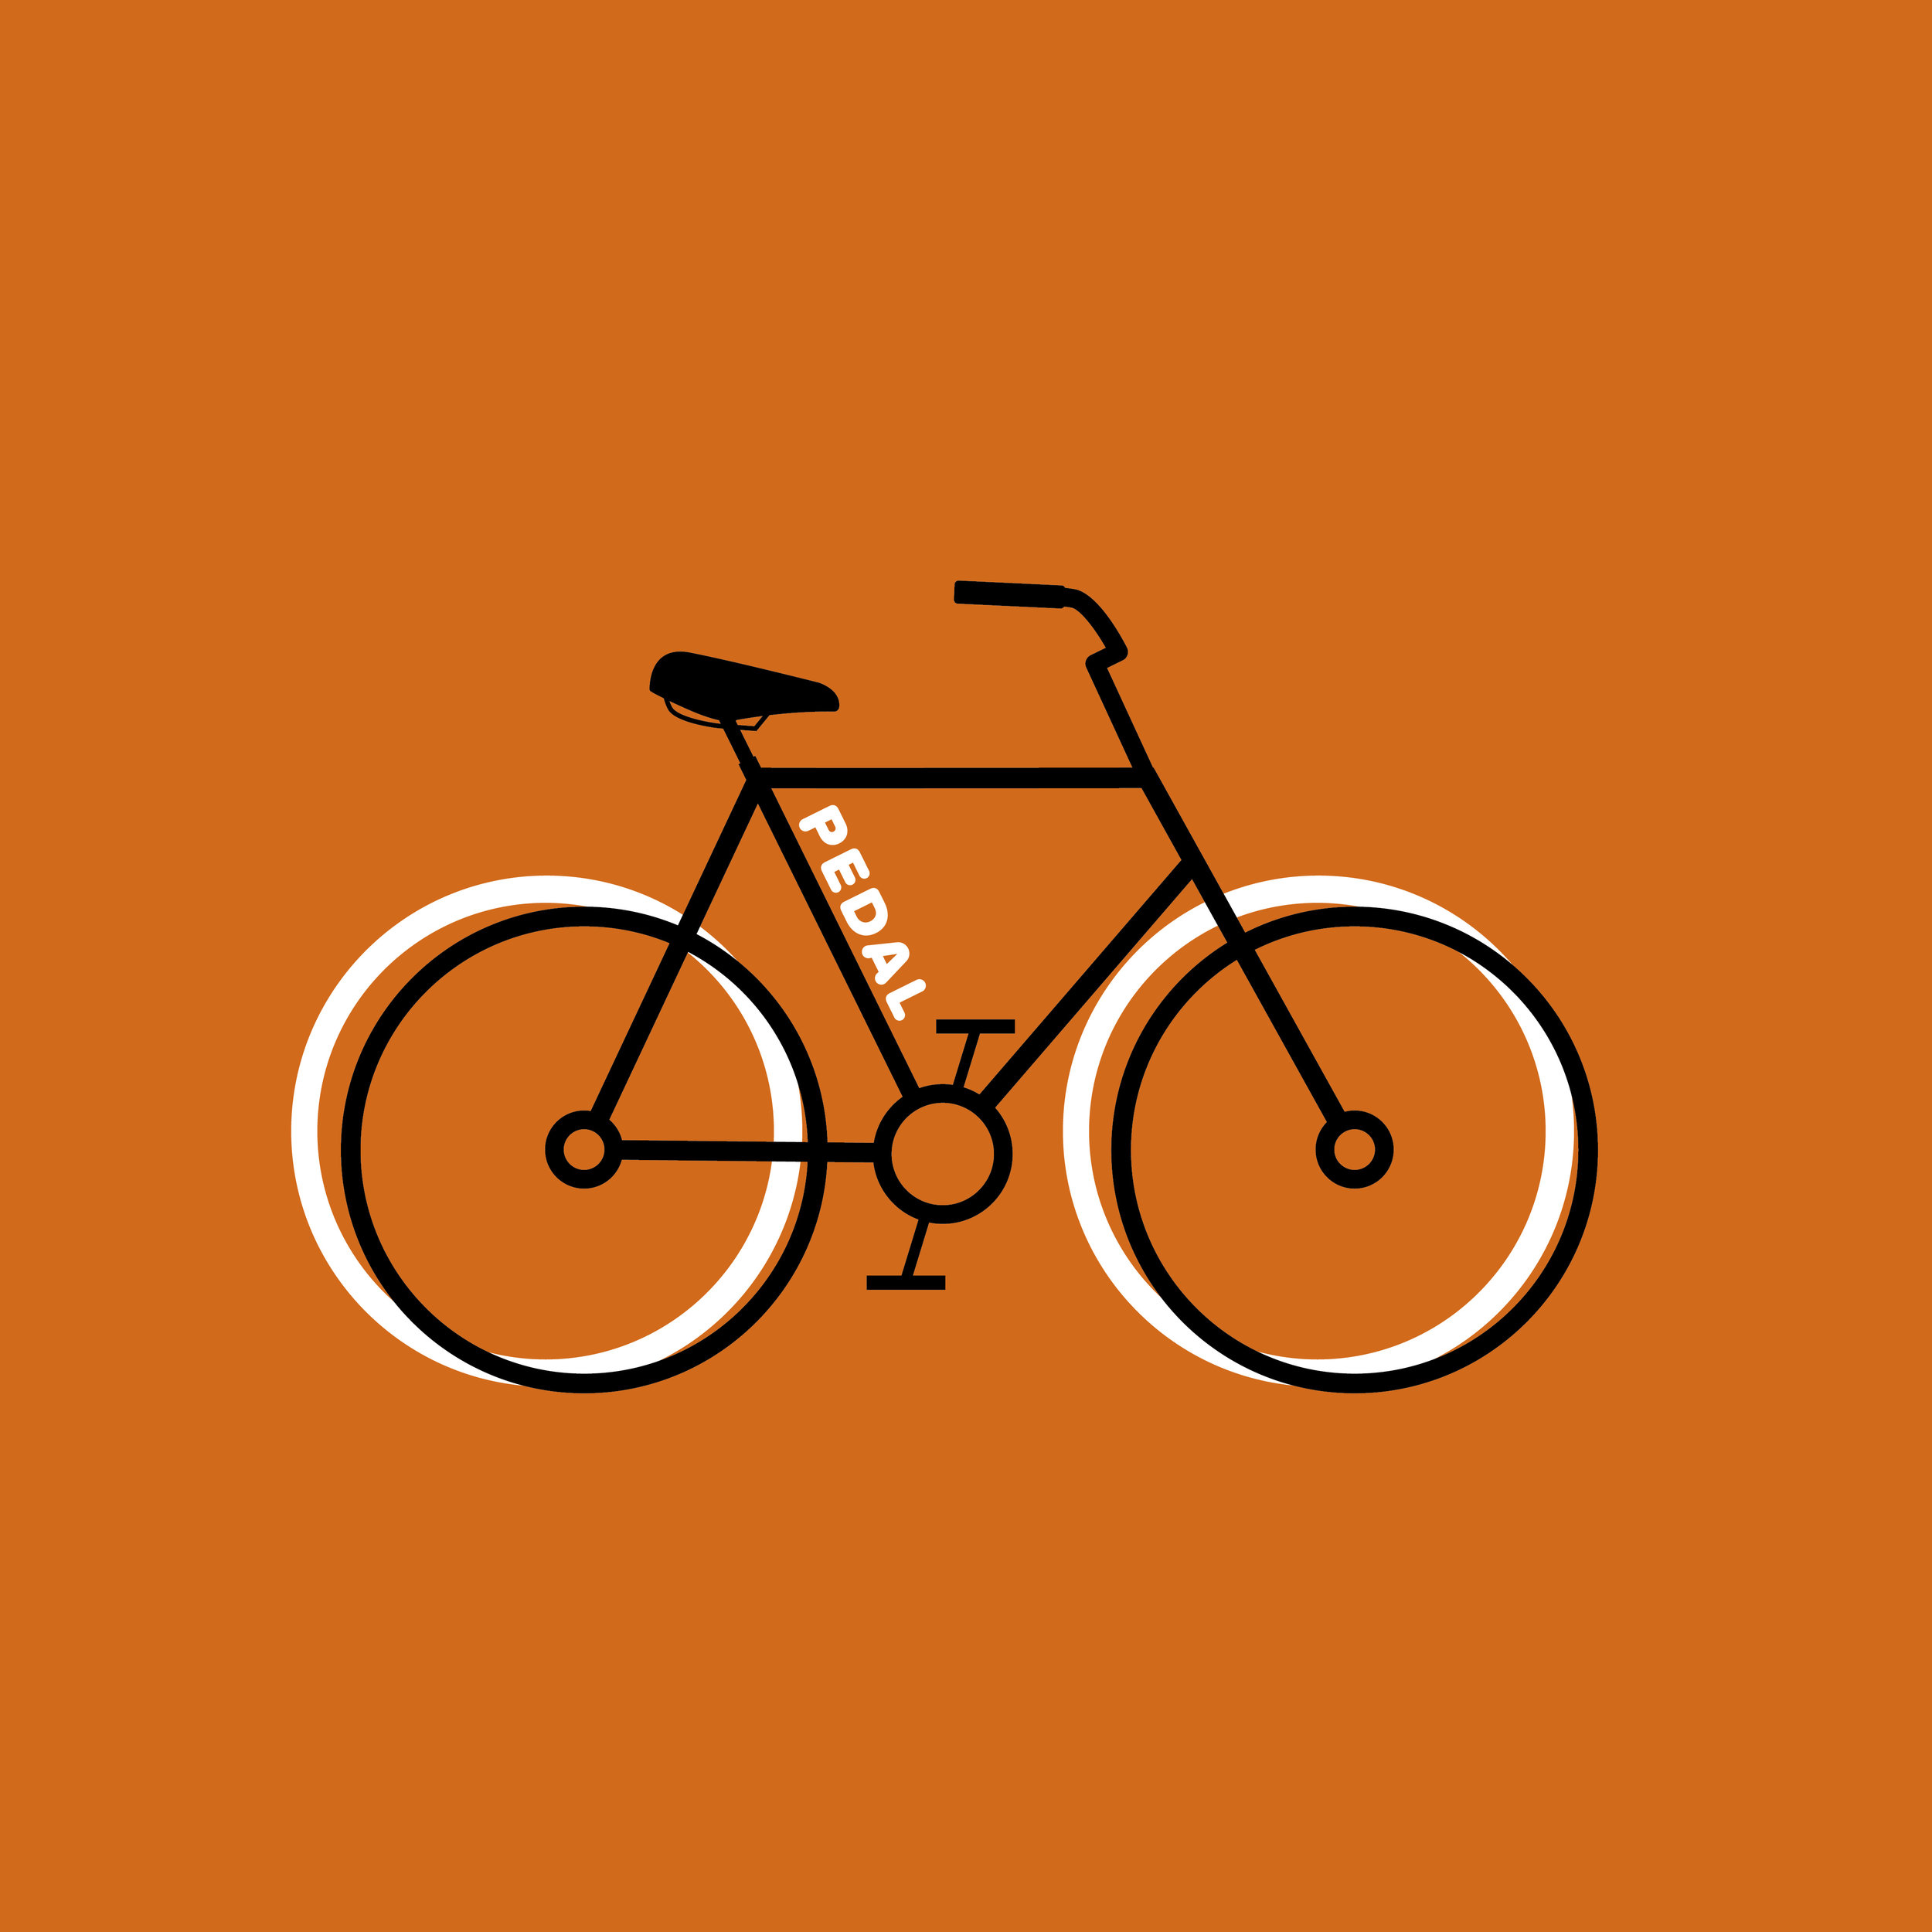 I Want To Ride My Bicycle Eric Watson Graphic Design